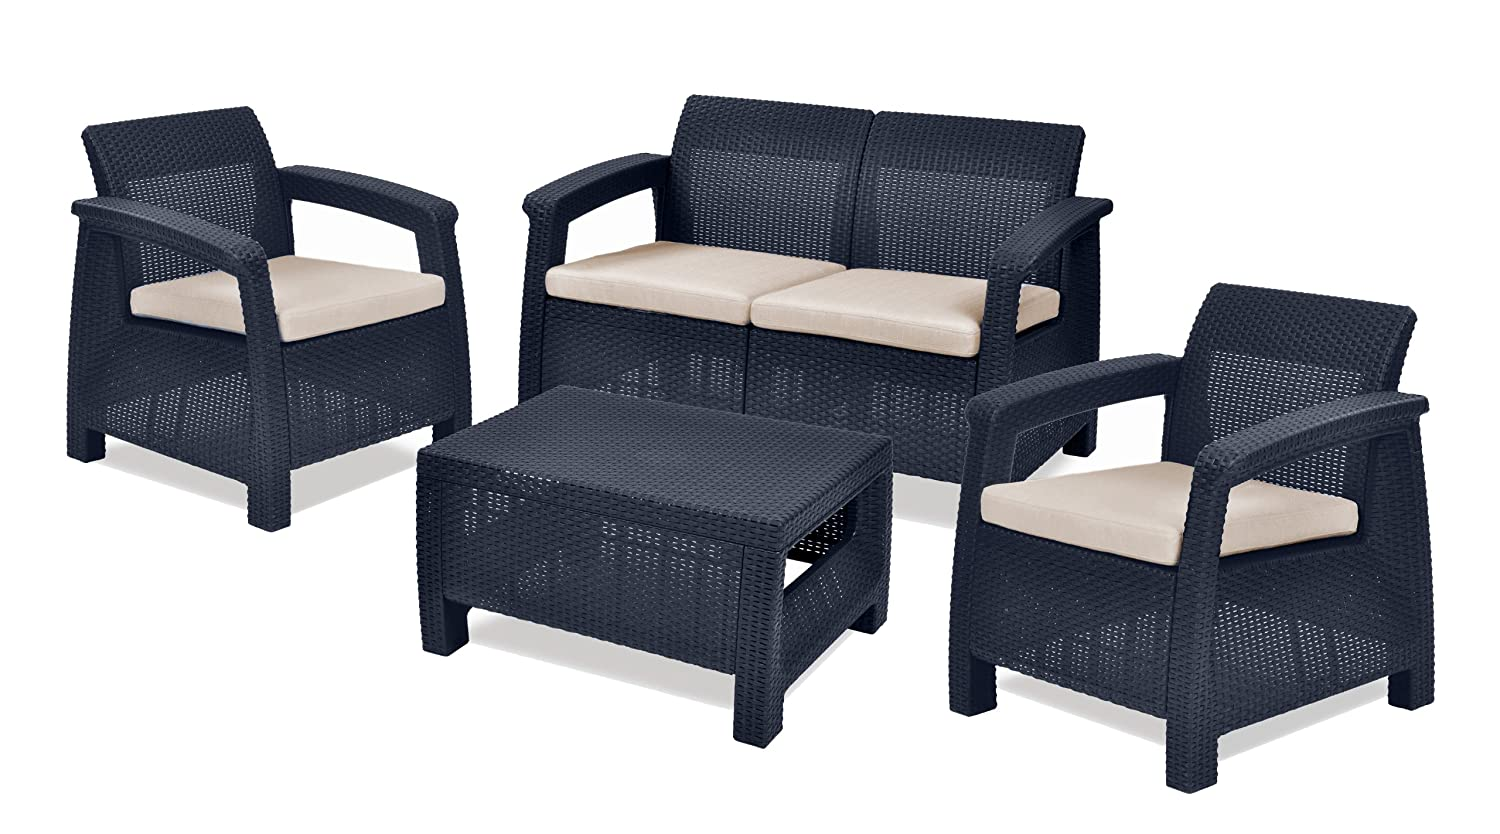 4 pcs Garden Furniture Set Keter Corfu with Table Plastic